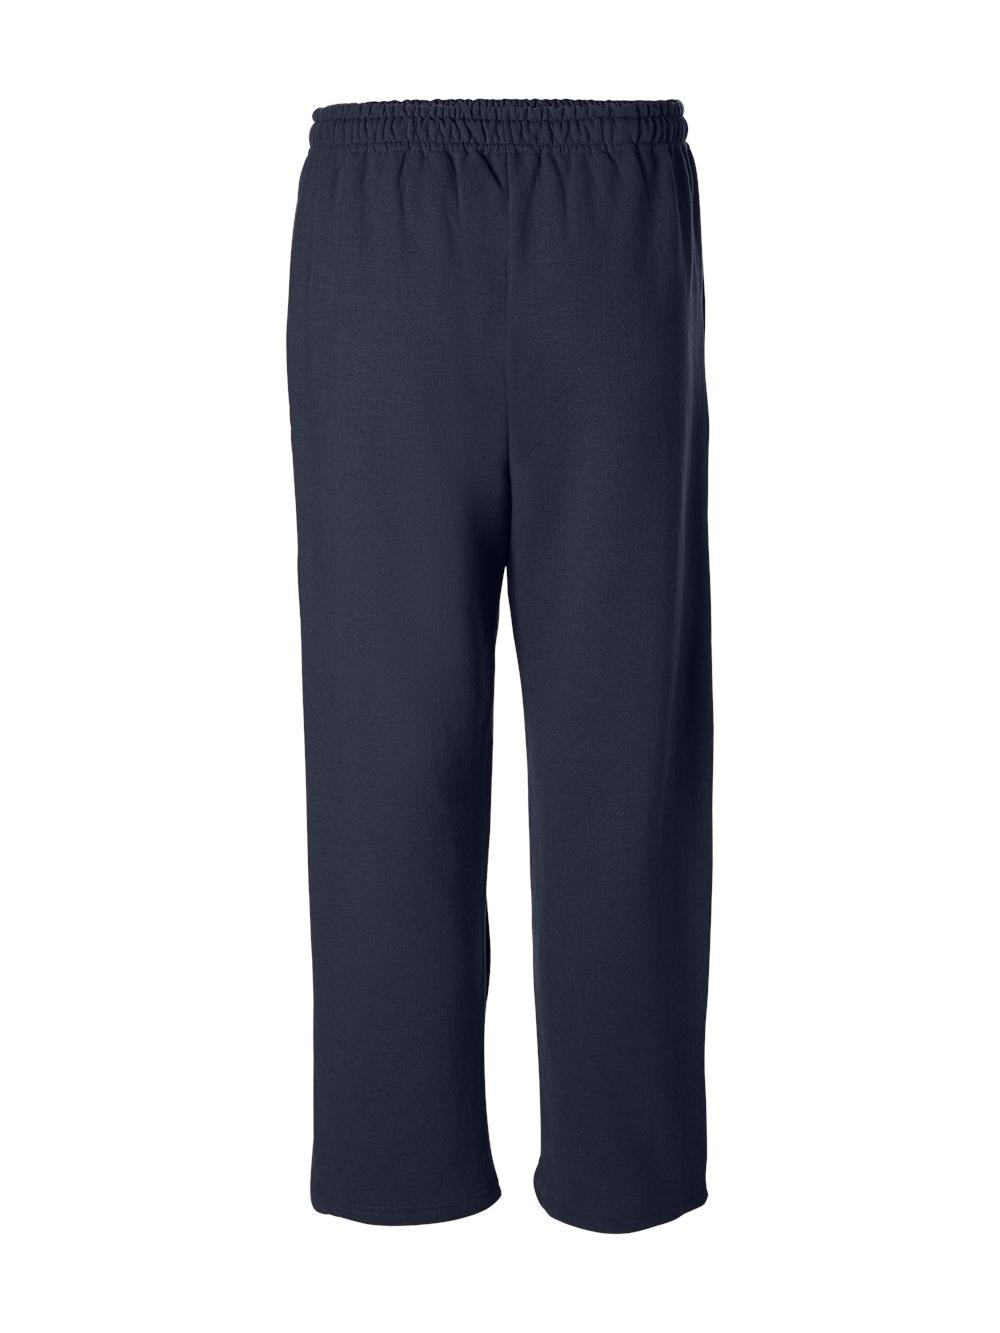 Gildan-Heavy-Blend-Open-Bottom-Sweatpants-18400 thumbnail 19